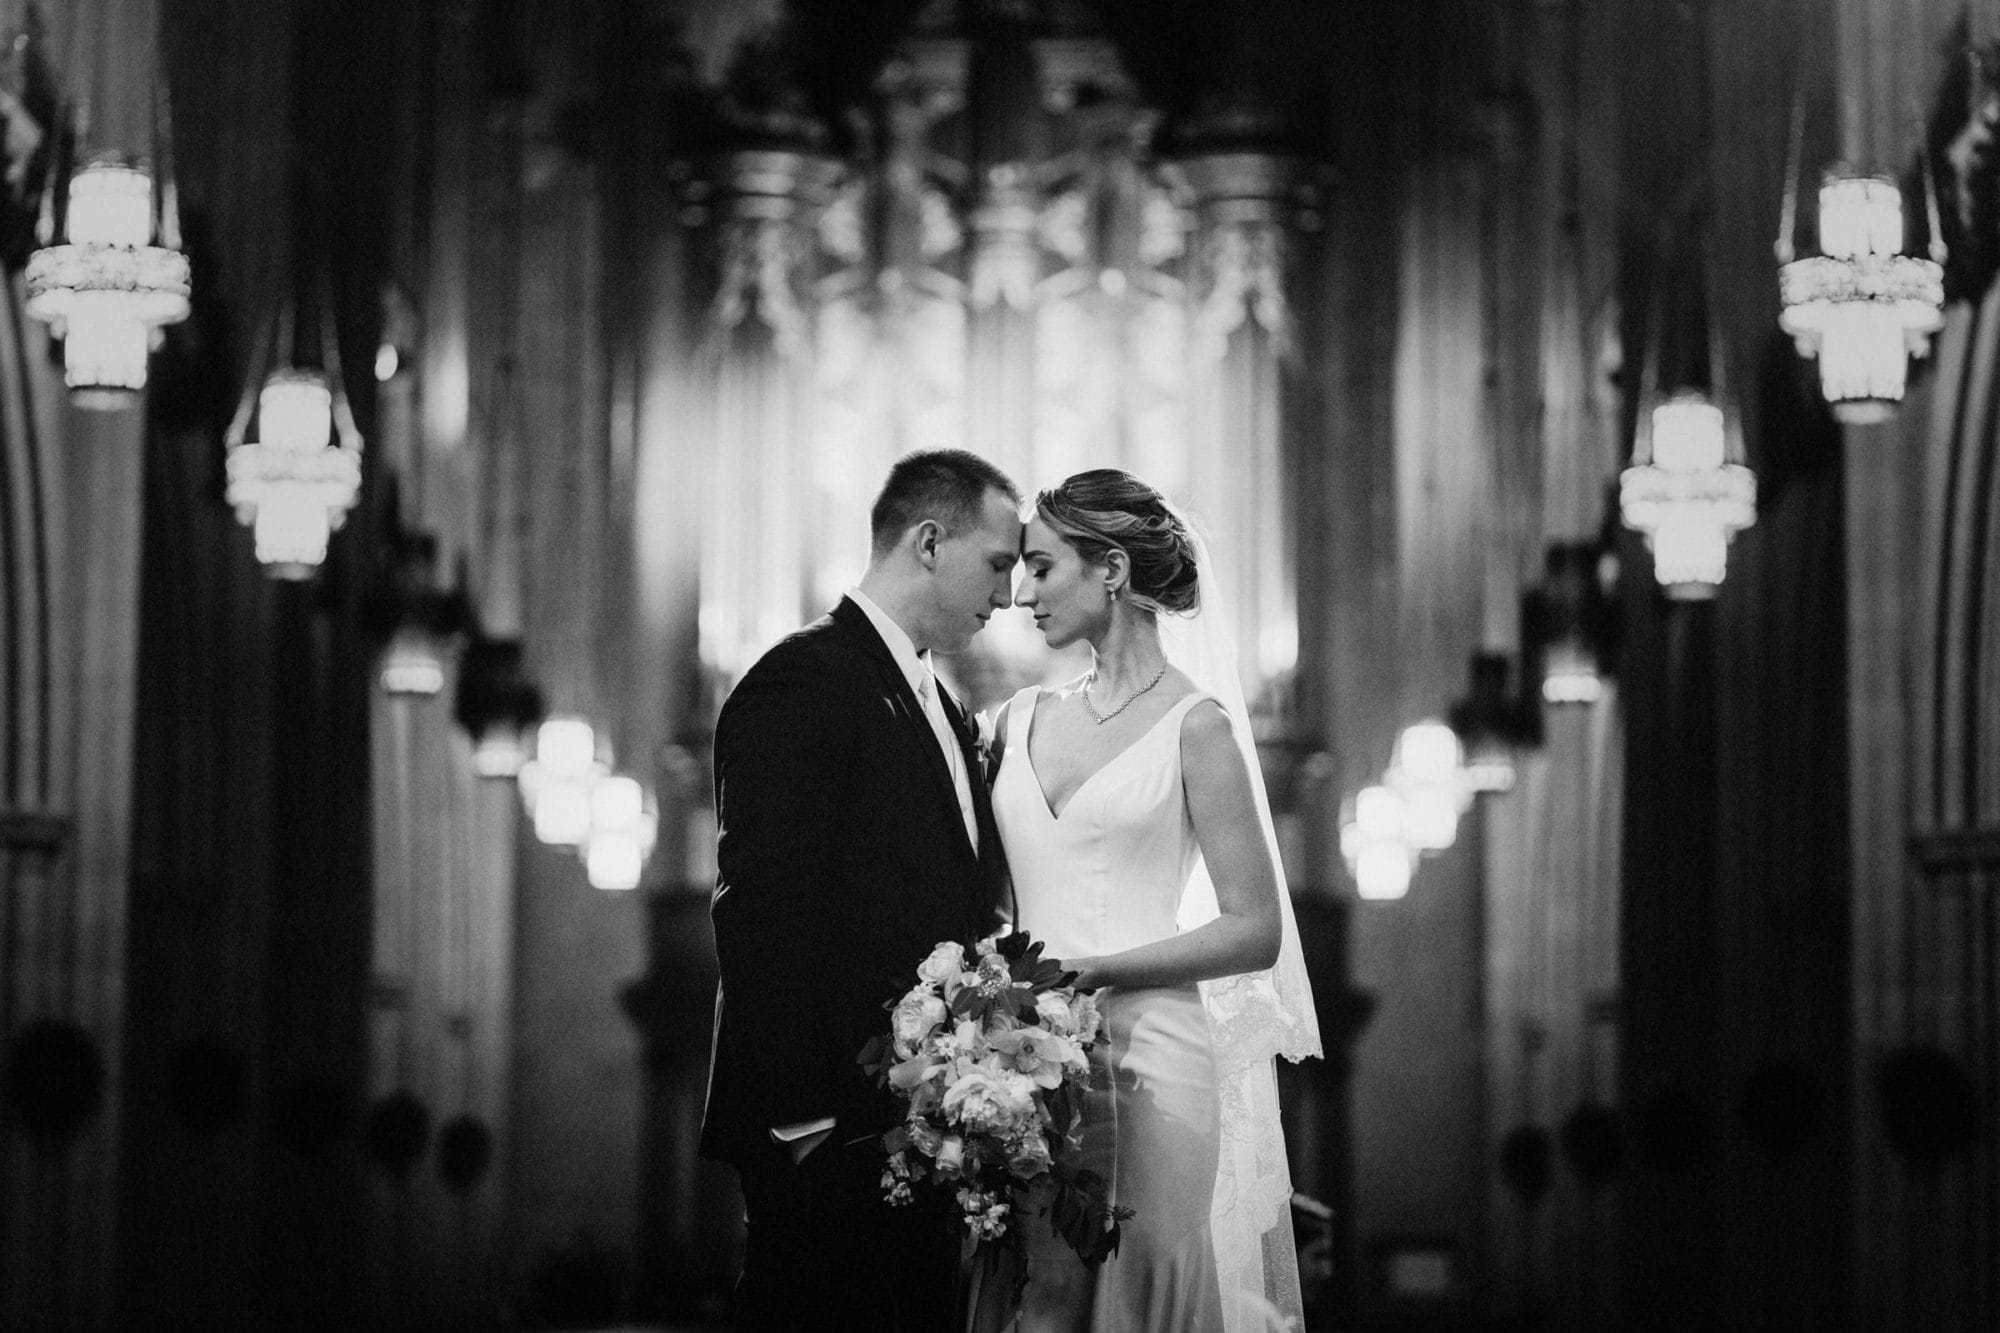 Duke Chapel Wedding Photo B&W Couple Altar Back to Organ